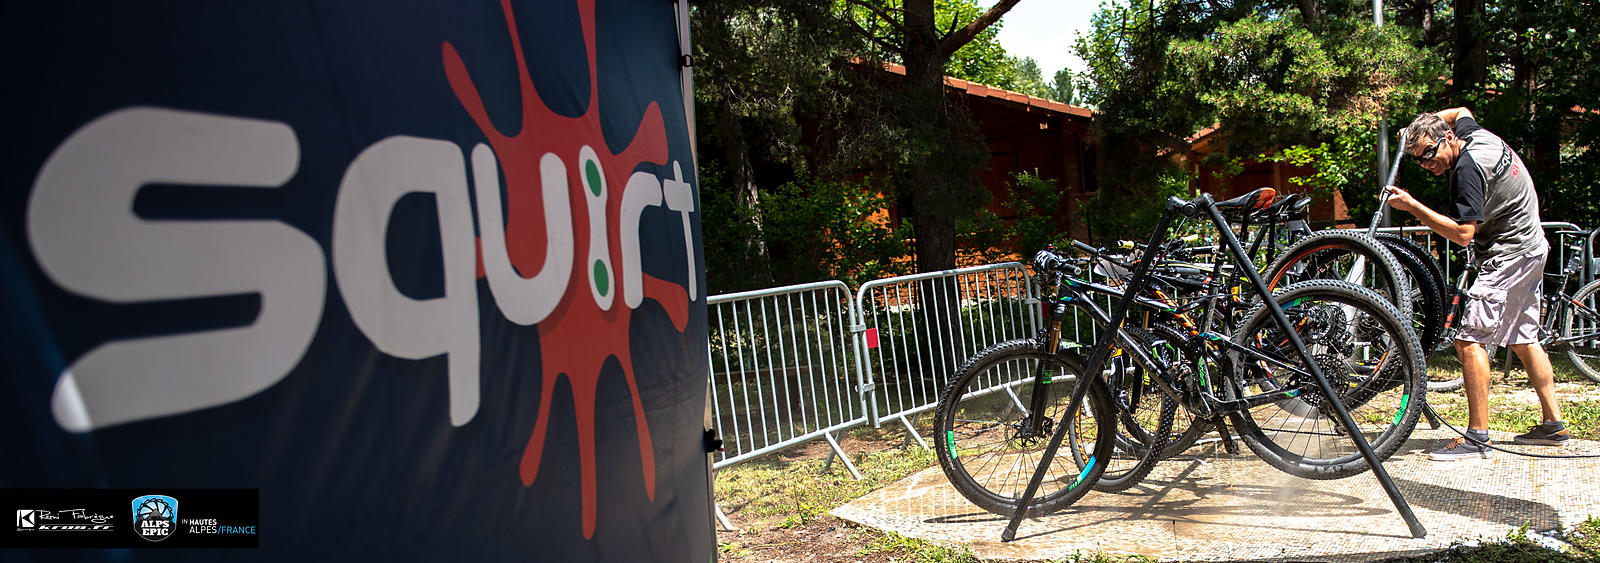 mercrediAlps11_AgenceKros_RemiFABREGUE_(19_sur_22)